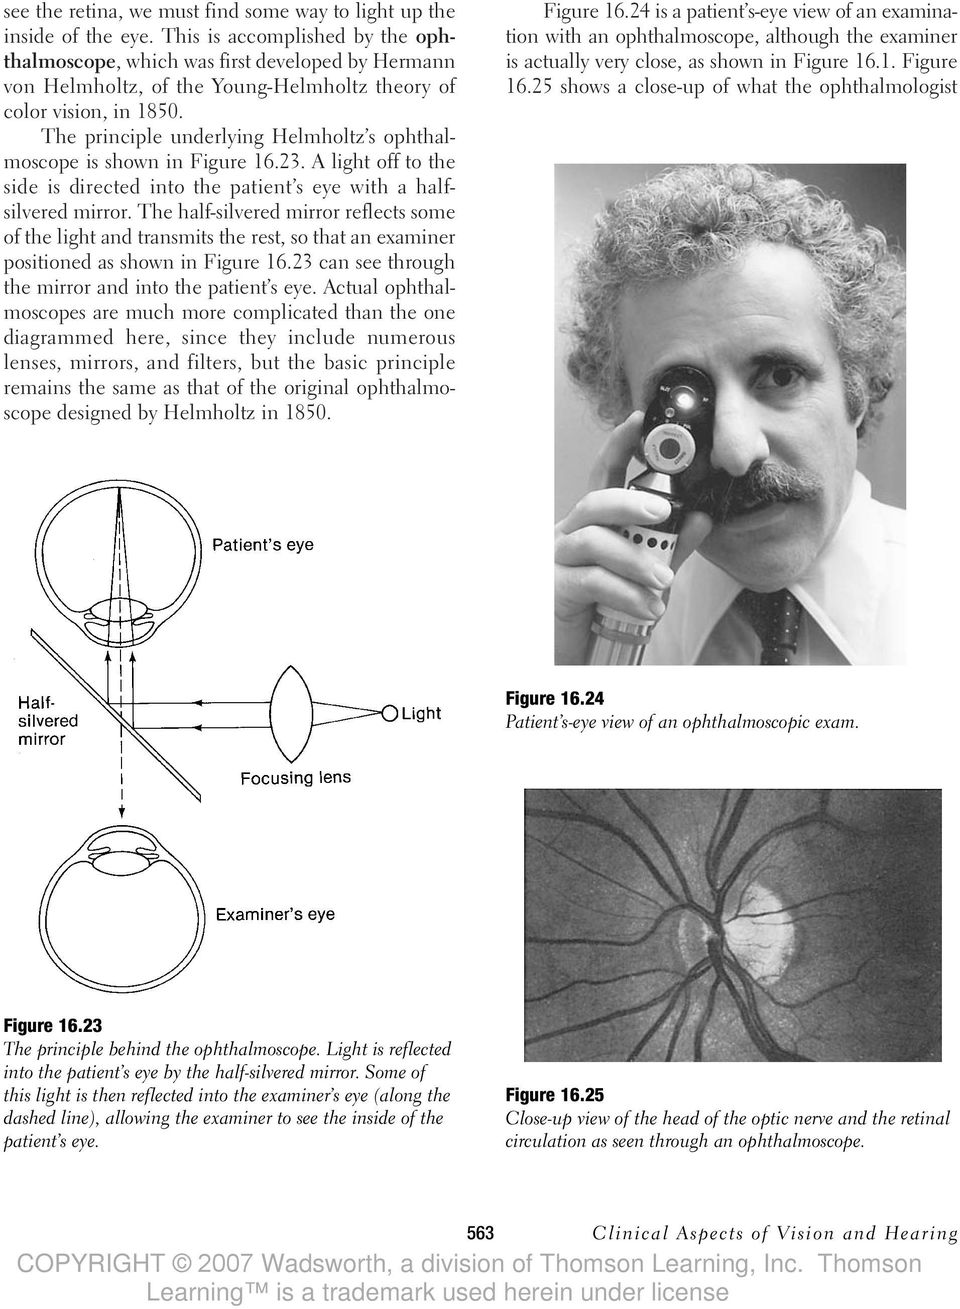 The principle underlying Helmholtz s ophthalmoscope is shown in Figure 16.23. A light off to the side is directed into the patient s eye with a halfsilvered mirror.